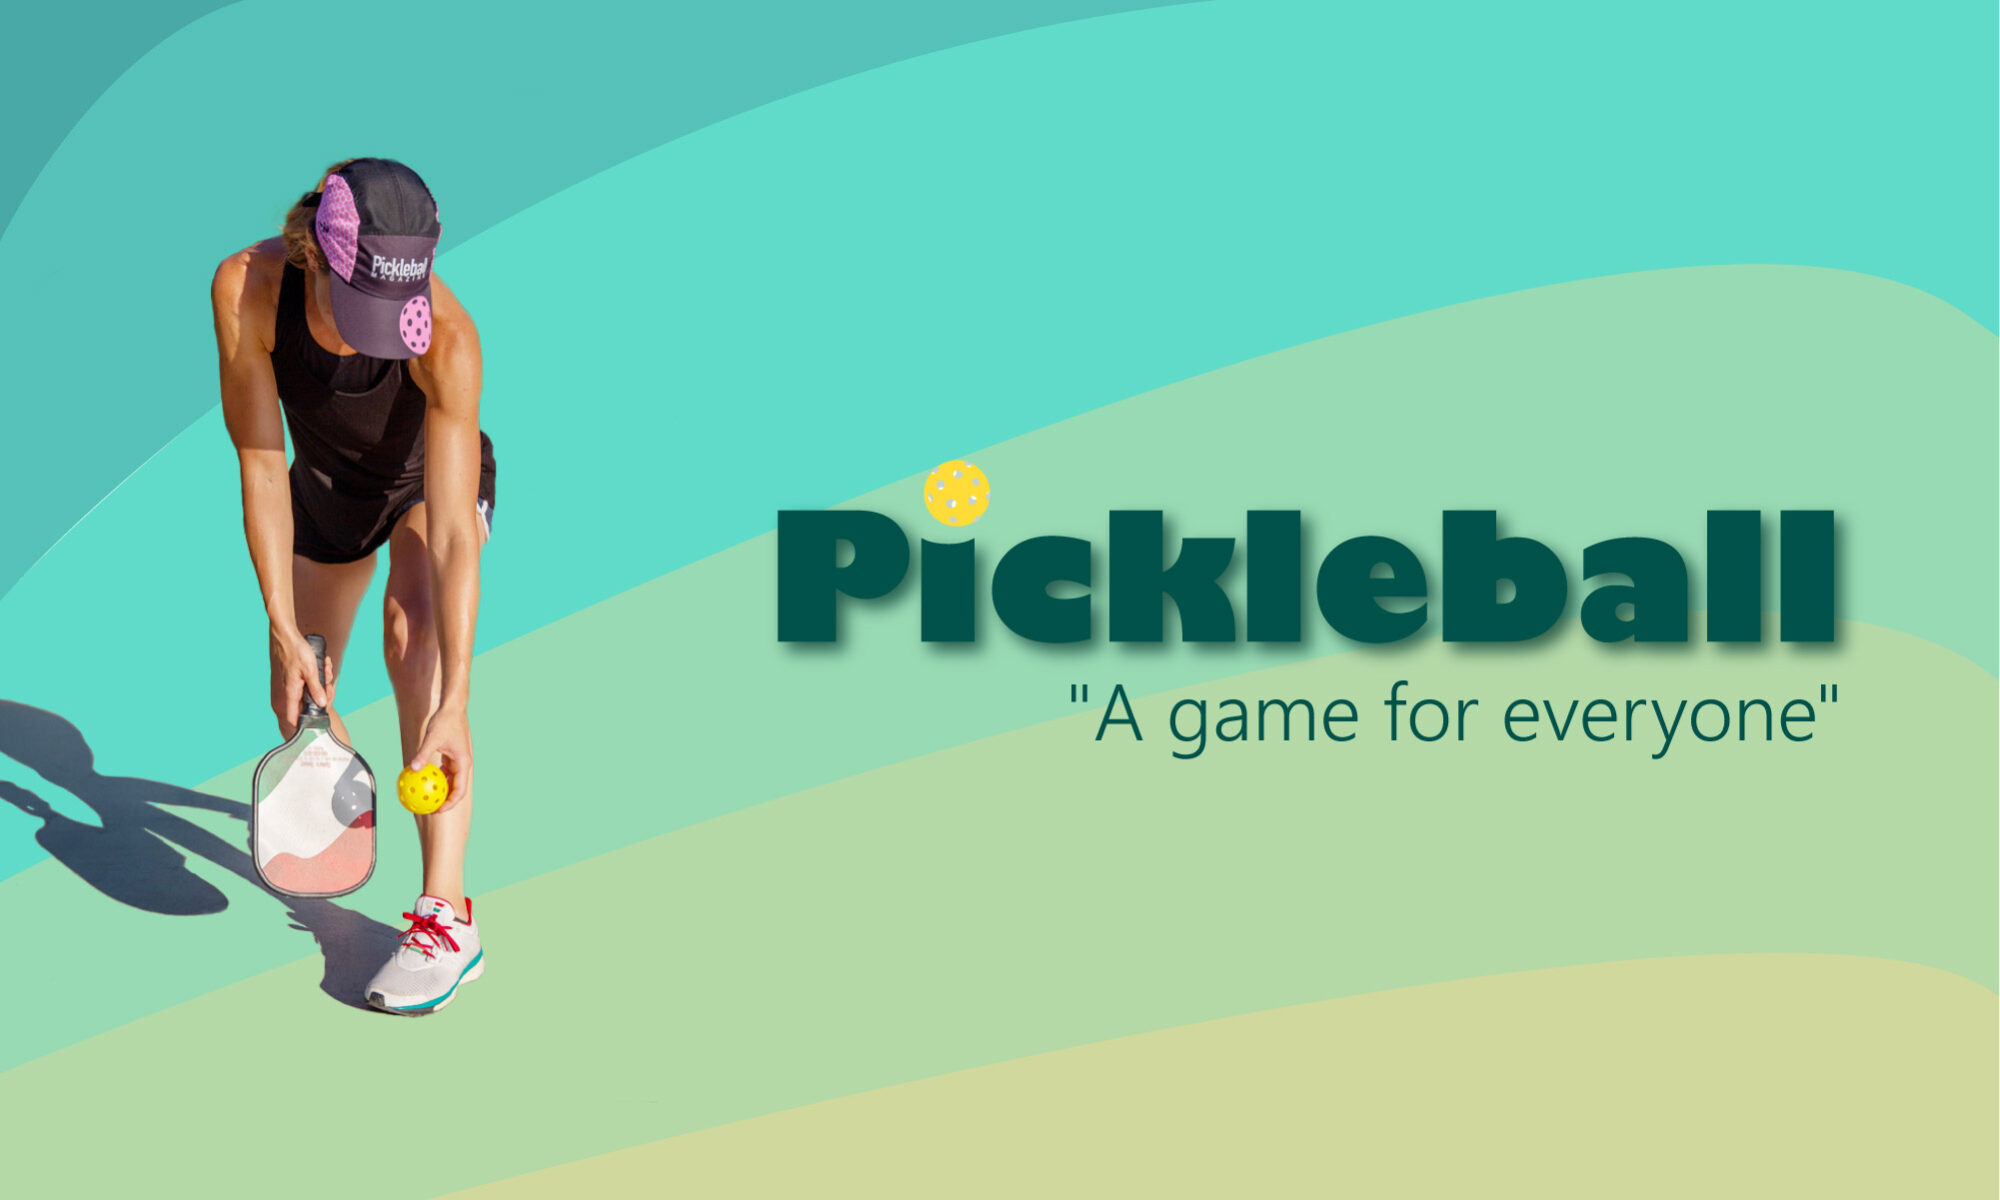 Pickleball.hu